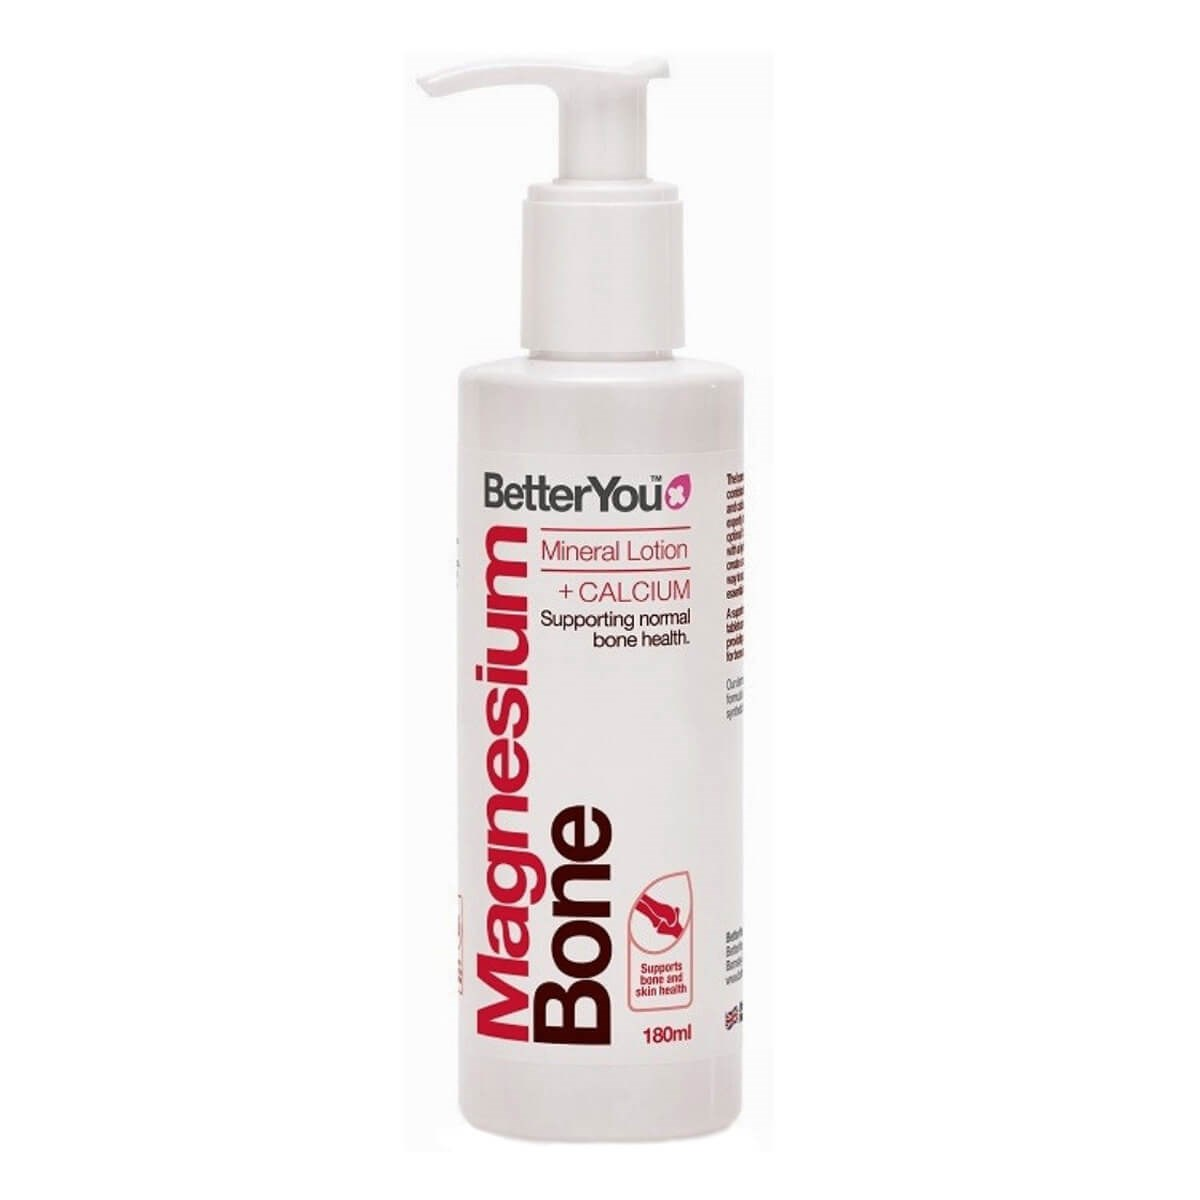 BetterYou Magnesium Bone Mineral Lotion